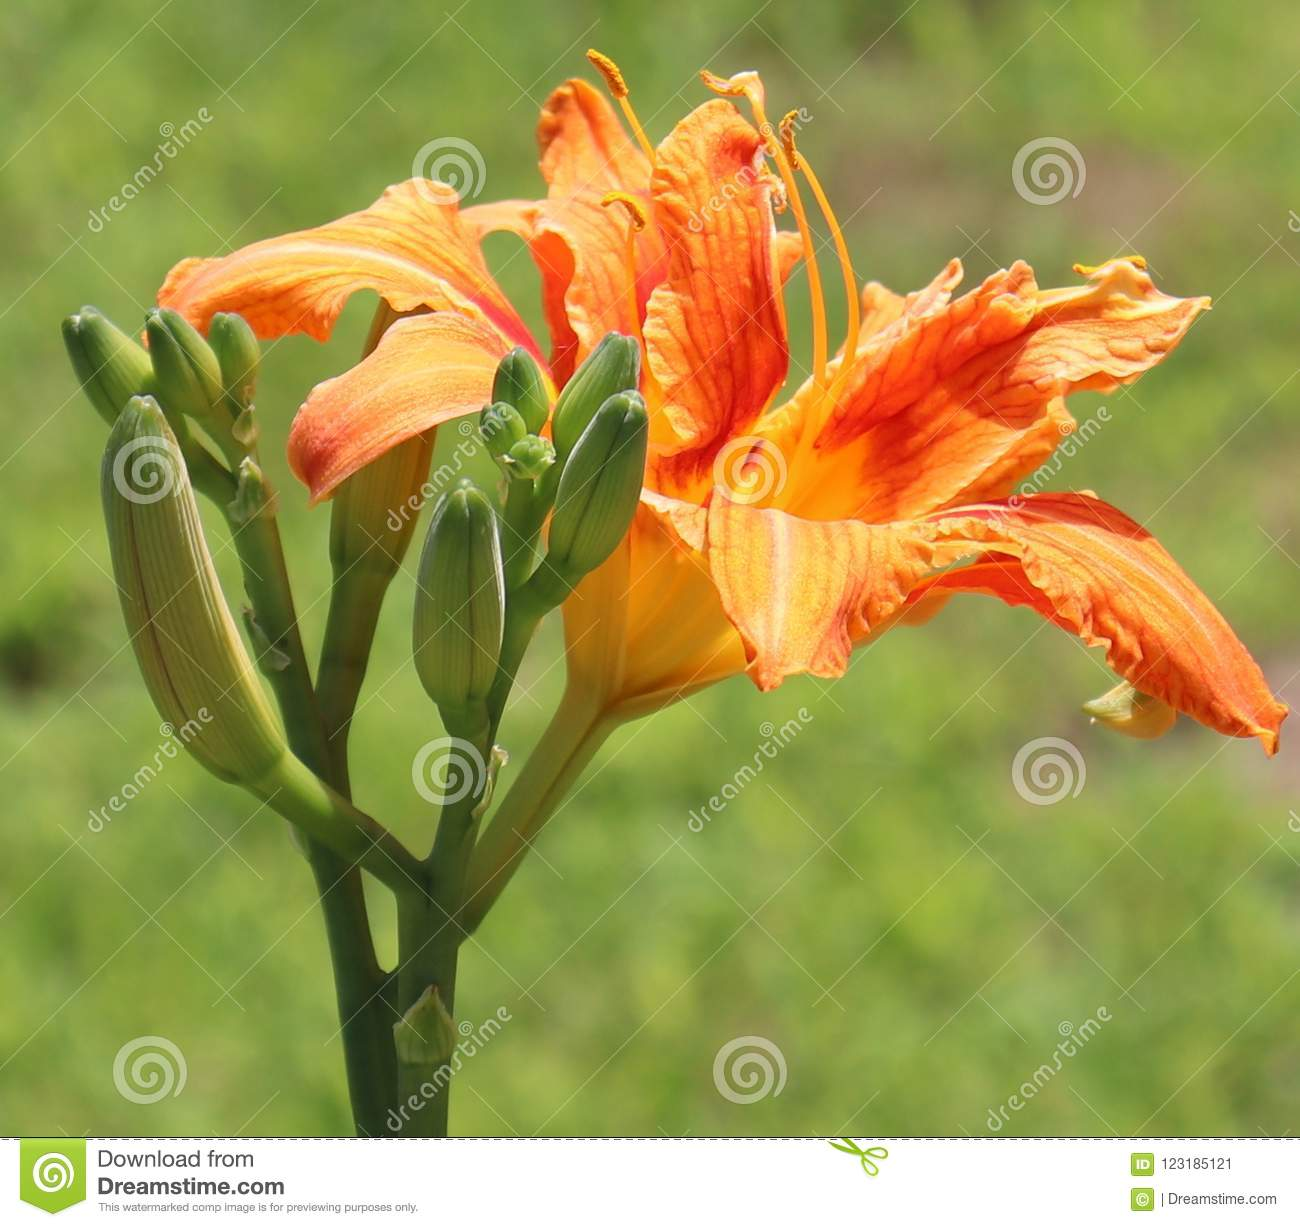 Orange, Flowers, Outside, Blurry background.